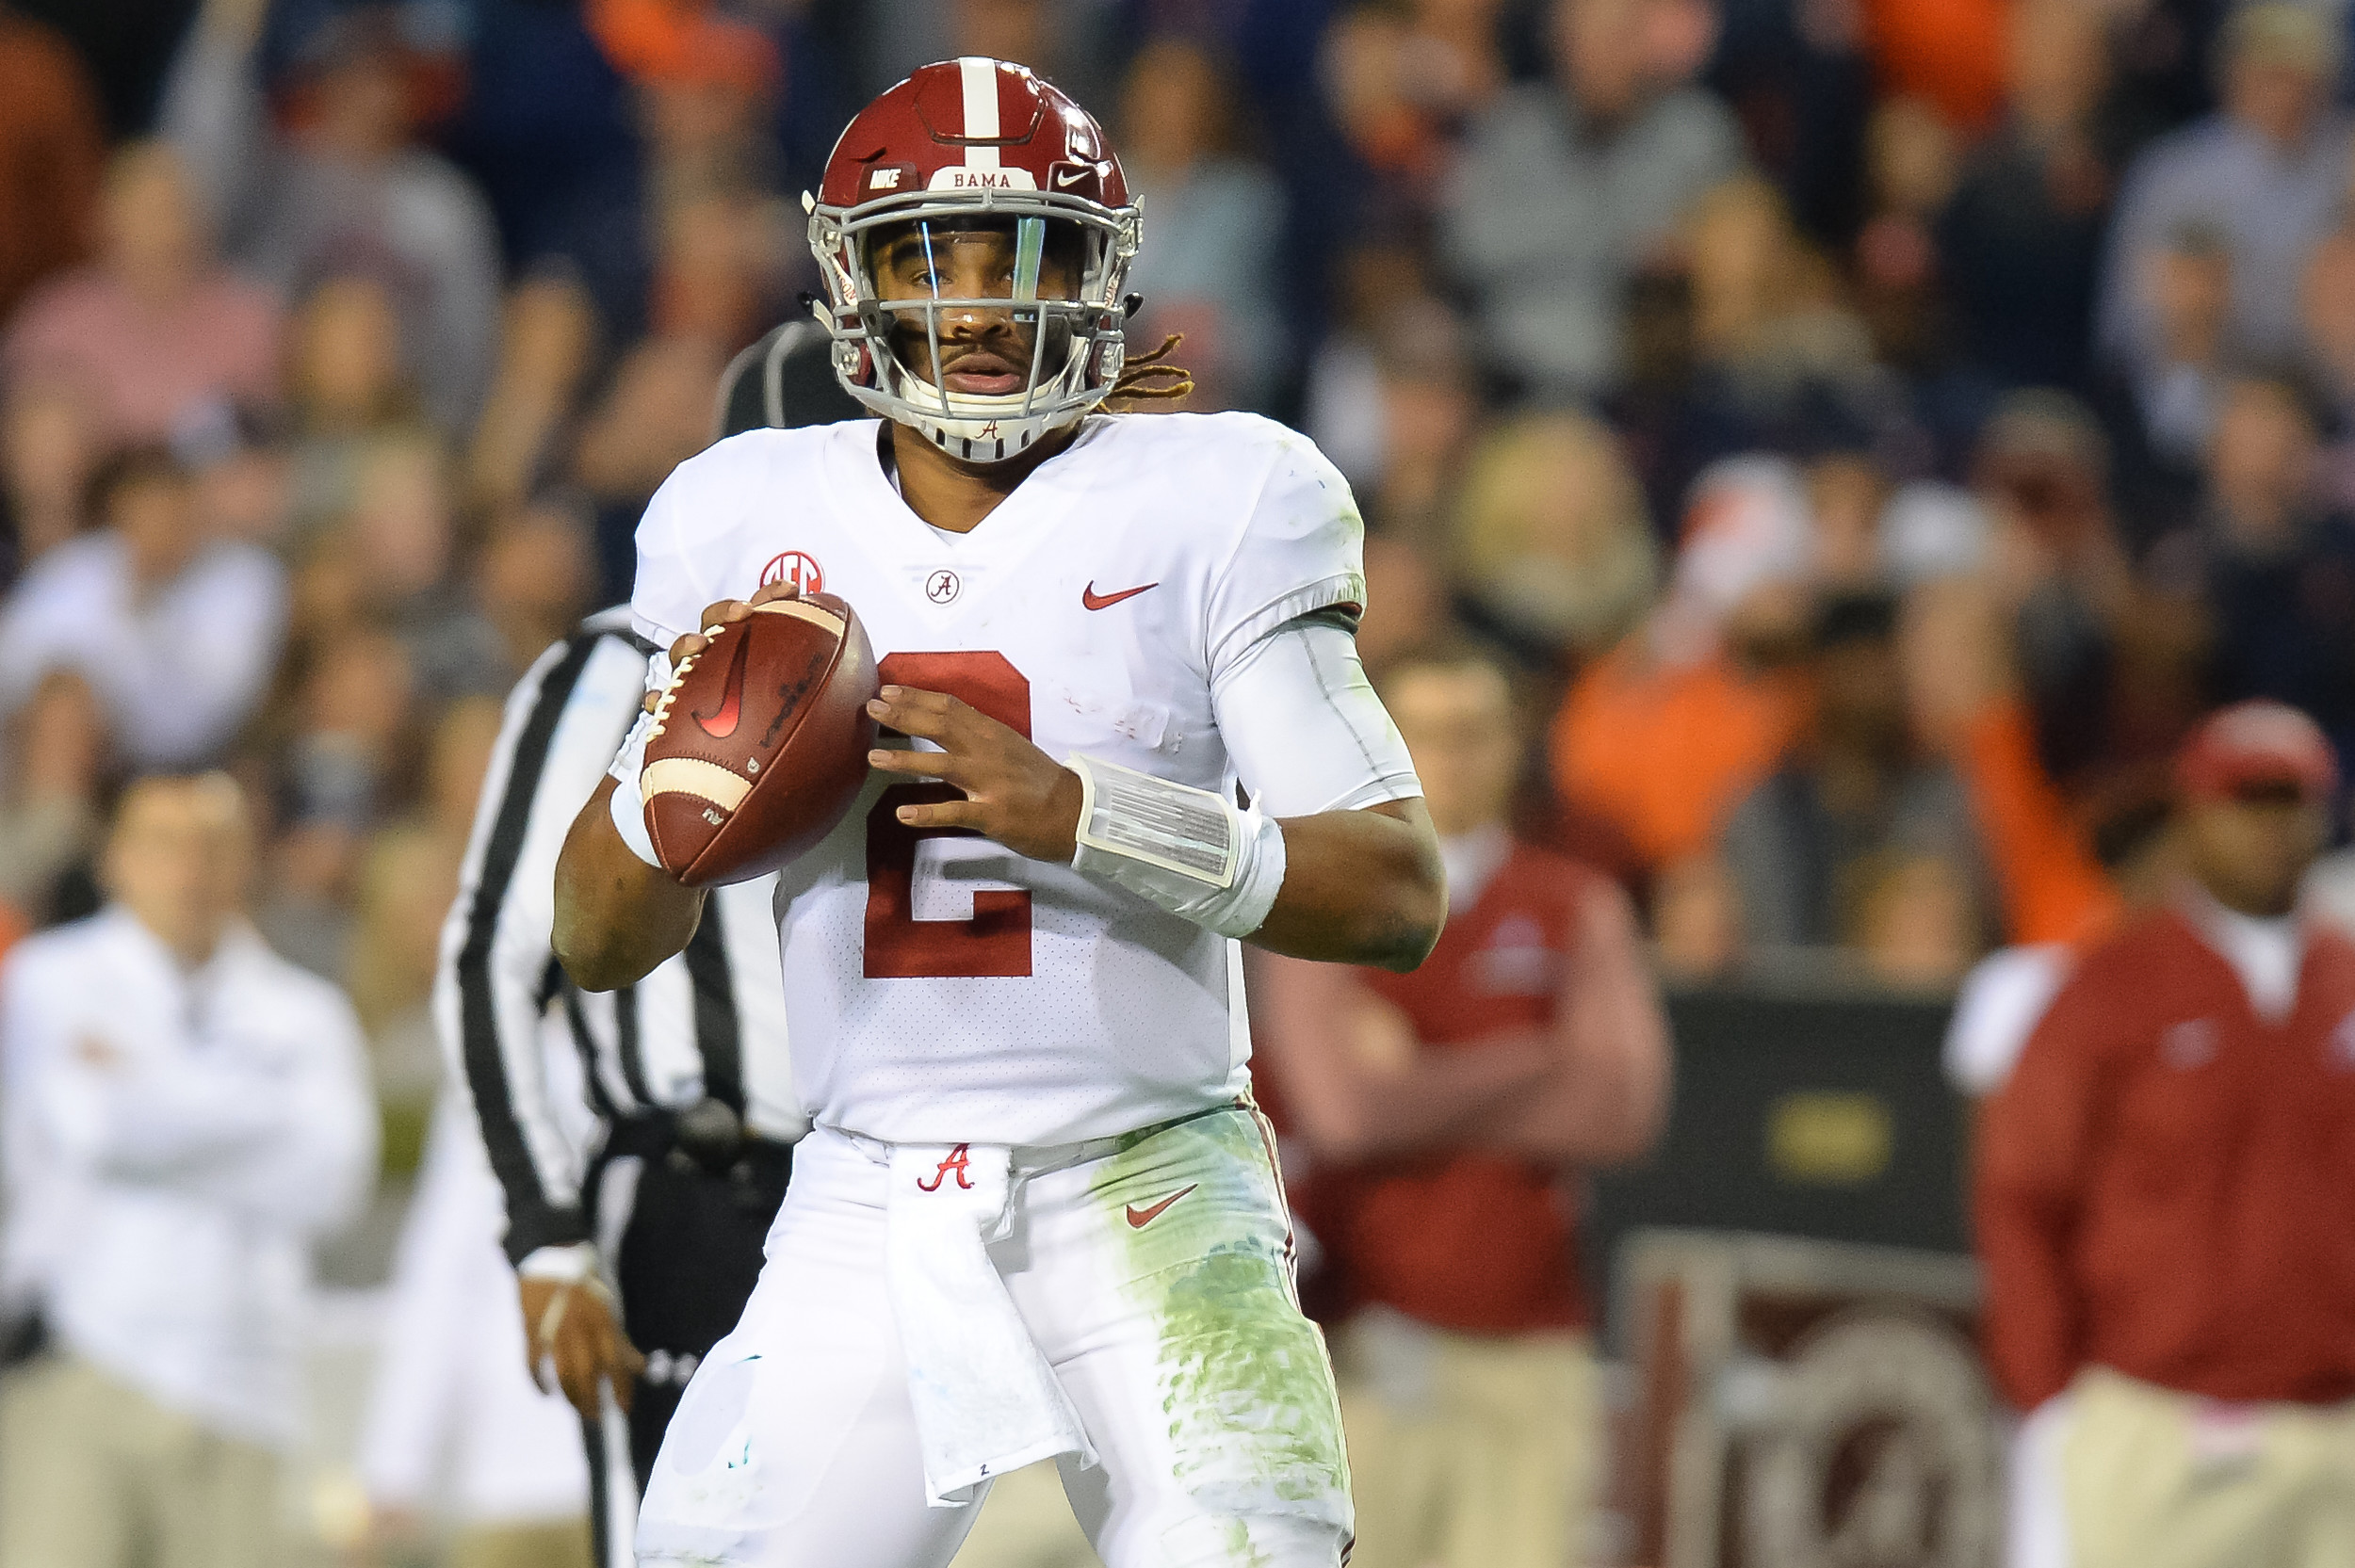 Alabama Crimson Tide quarterback Jalen Hurts (2) looks to pass during the second half of Saturday's game, at Jordan-Hare Stadium.